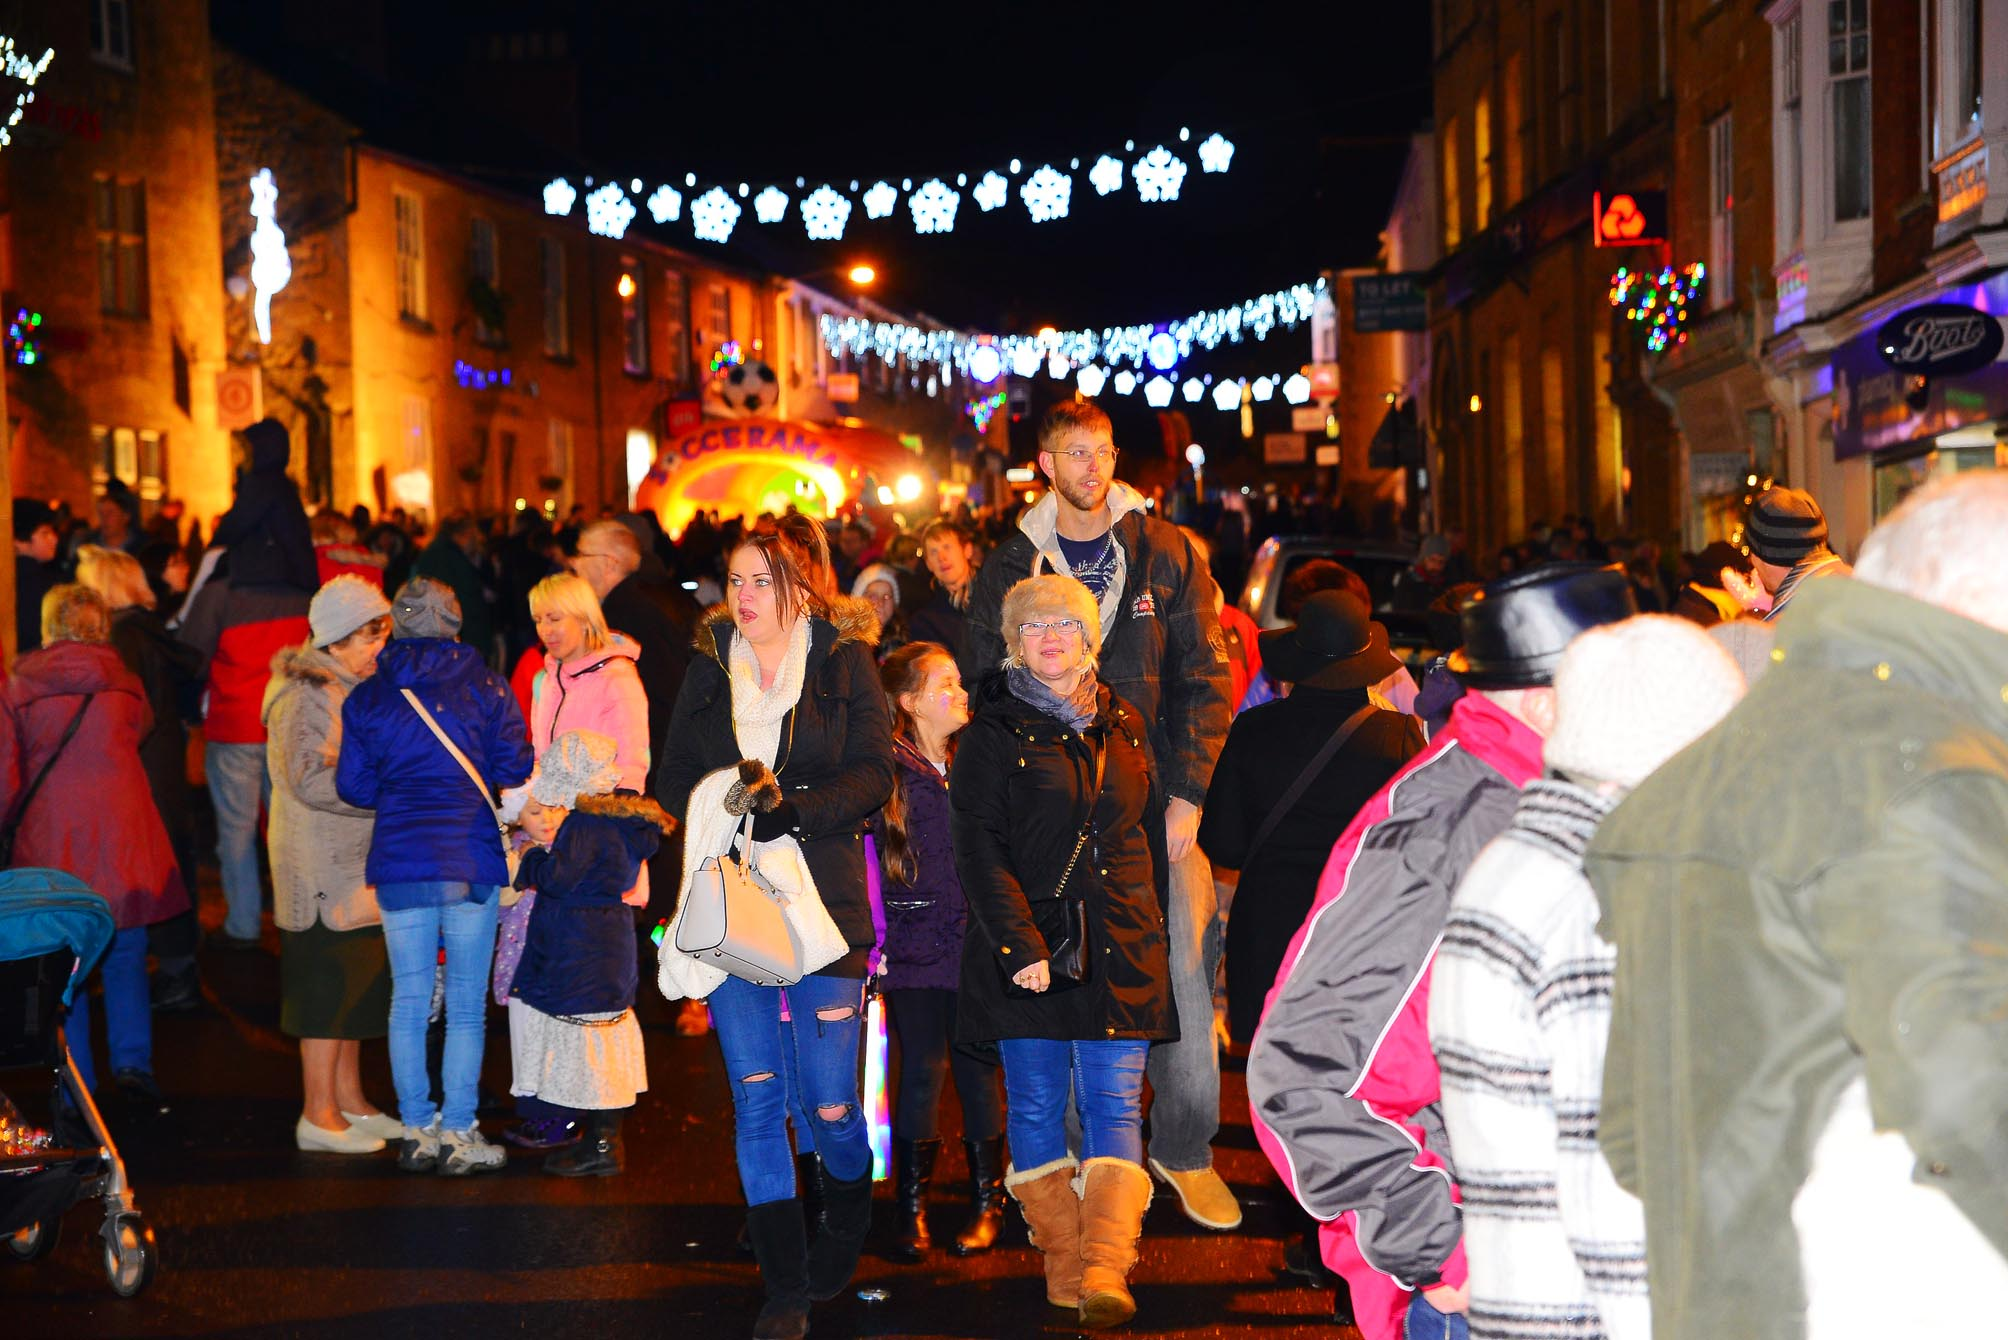 Ilminster Victorian Evening: Everything you need to know about tonight's lights switch on